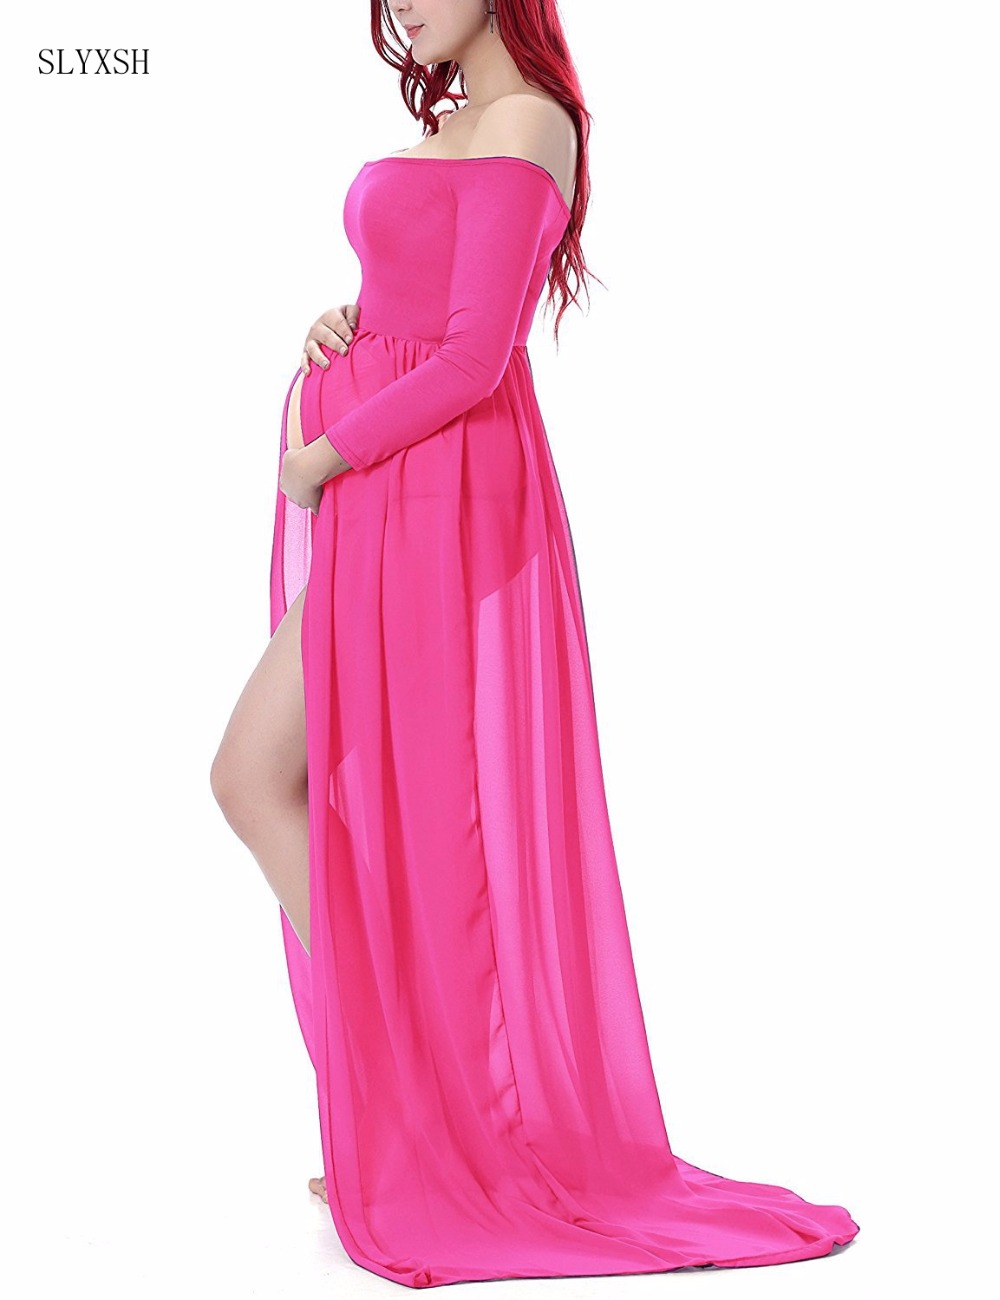 bb6466df8fe Fashion women dress Maternity Dresses For Photo red Dress Maternty  Photography Props Slong Sleeve Stretch Cotton Pregnant Dress